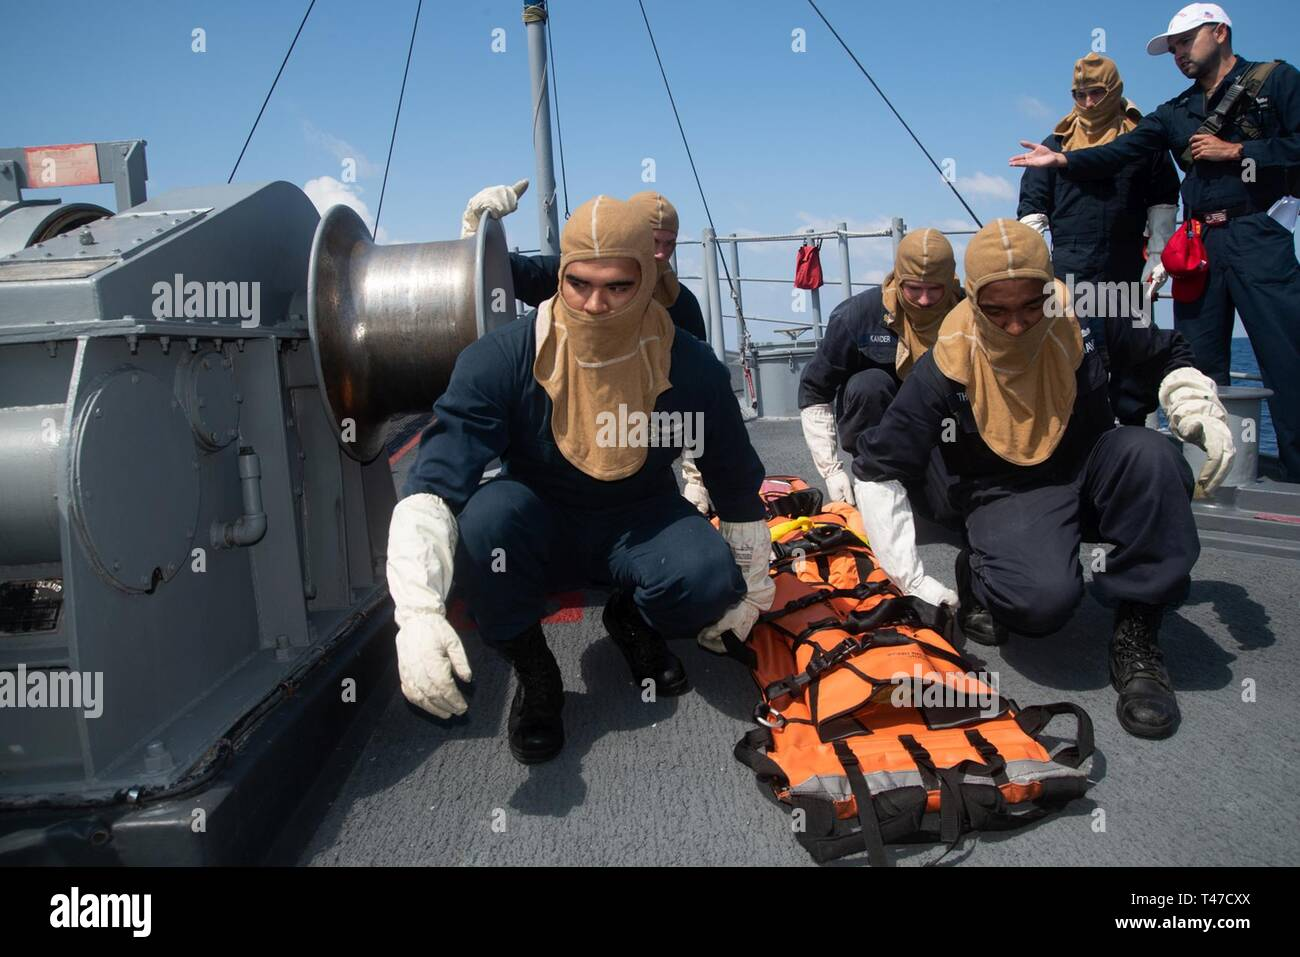 SOUTH CHINA SEA (March 15, 2019) Sailors prepare to lift a stretcher during a general quarters drill aboard the Avenger-class mine countermeasures ship USS Chief (MCM 14). Chief, part of Mine Countermeasure Squadron 7, is operating in the Indo-Pacific region to enhance interoperability with partners and serve as a ready-response platform for contingency operations. - Stock Image